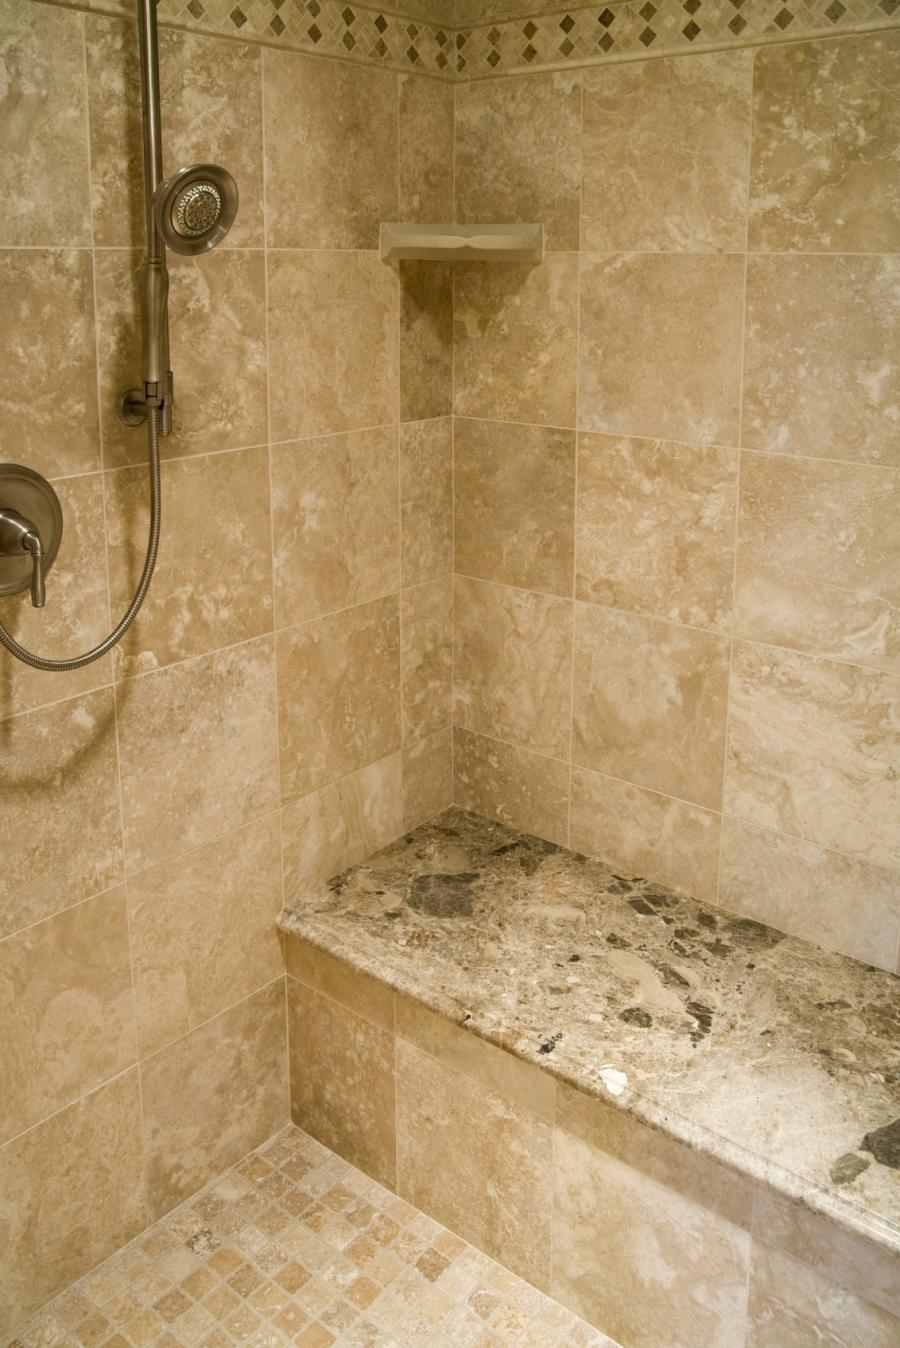 Travertine tile shower photos for Travertine tile bathroom ideas